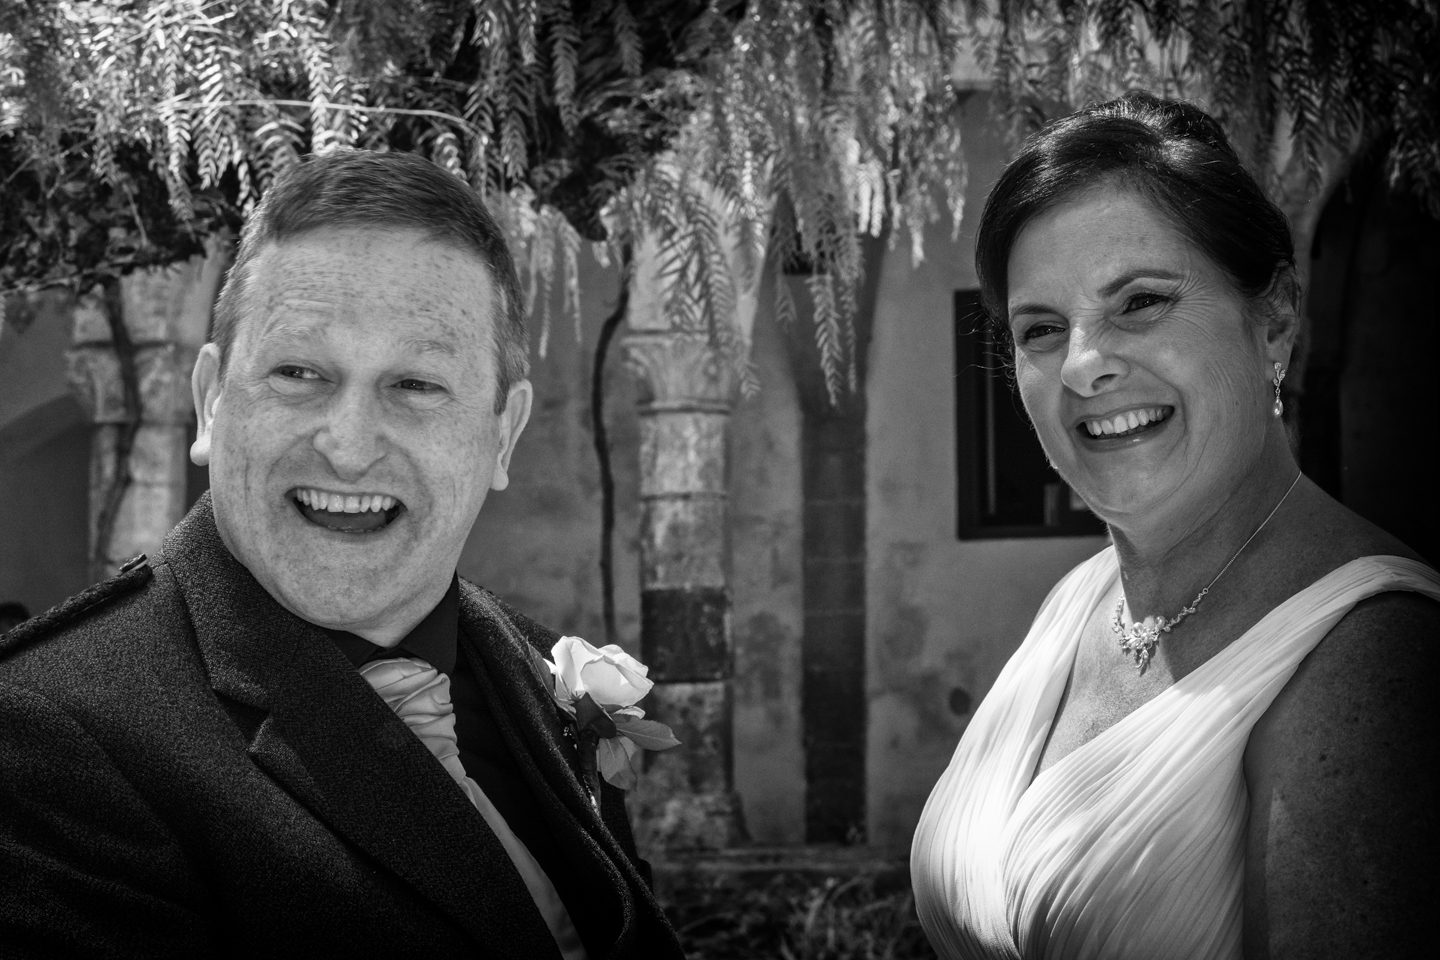 Russell & Linda_Wedding_Sorrento_Scotland_Together_Sun_Smile_BW